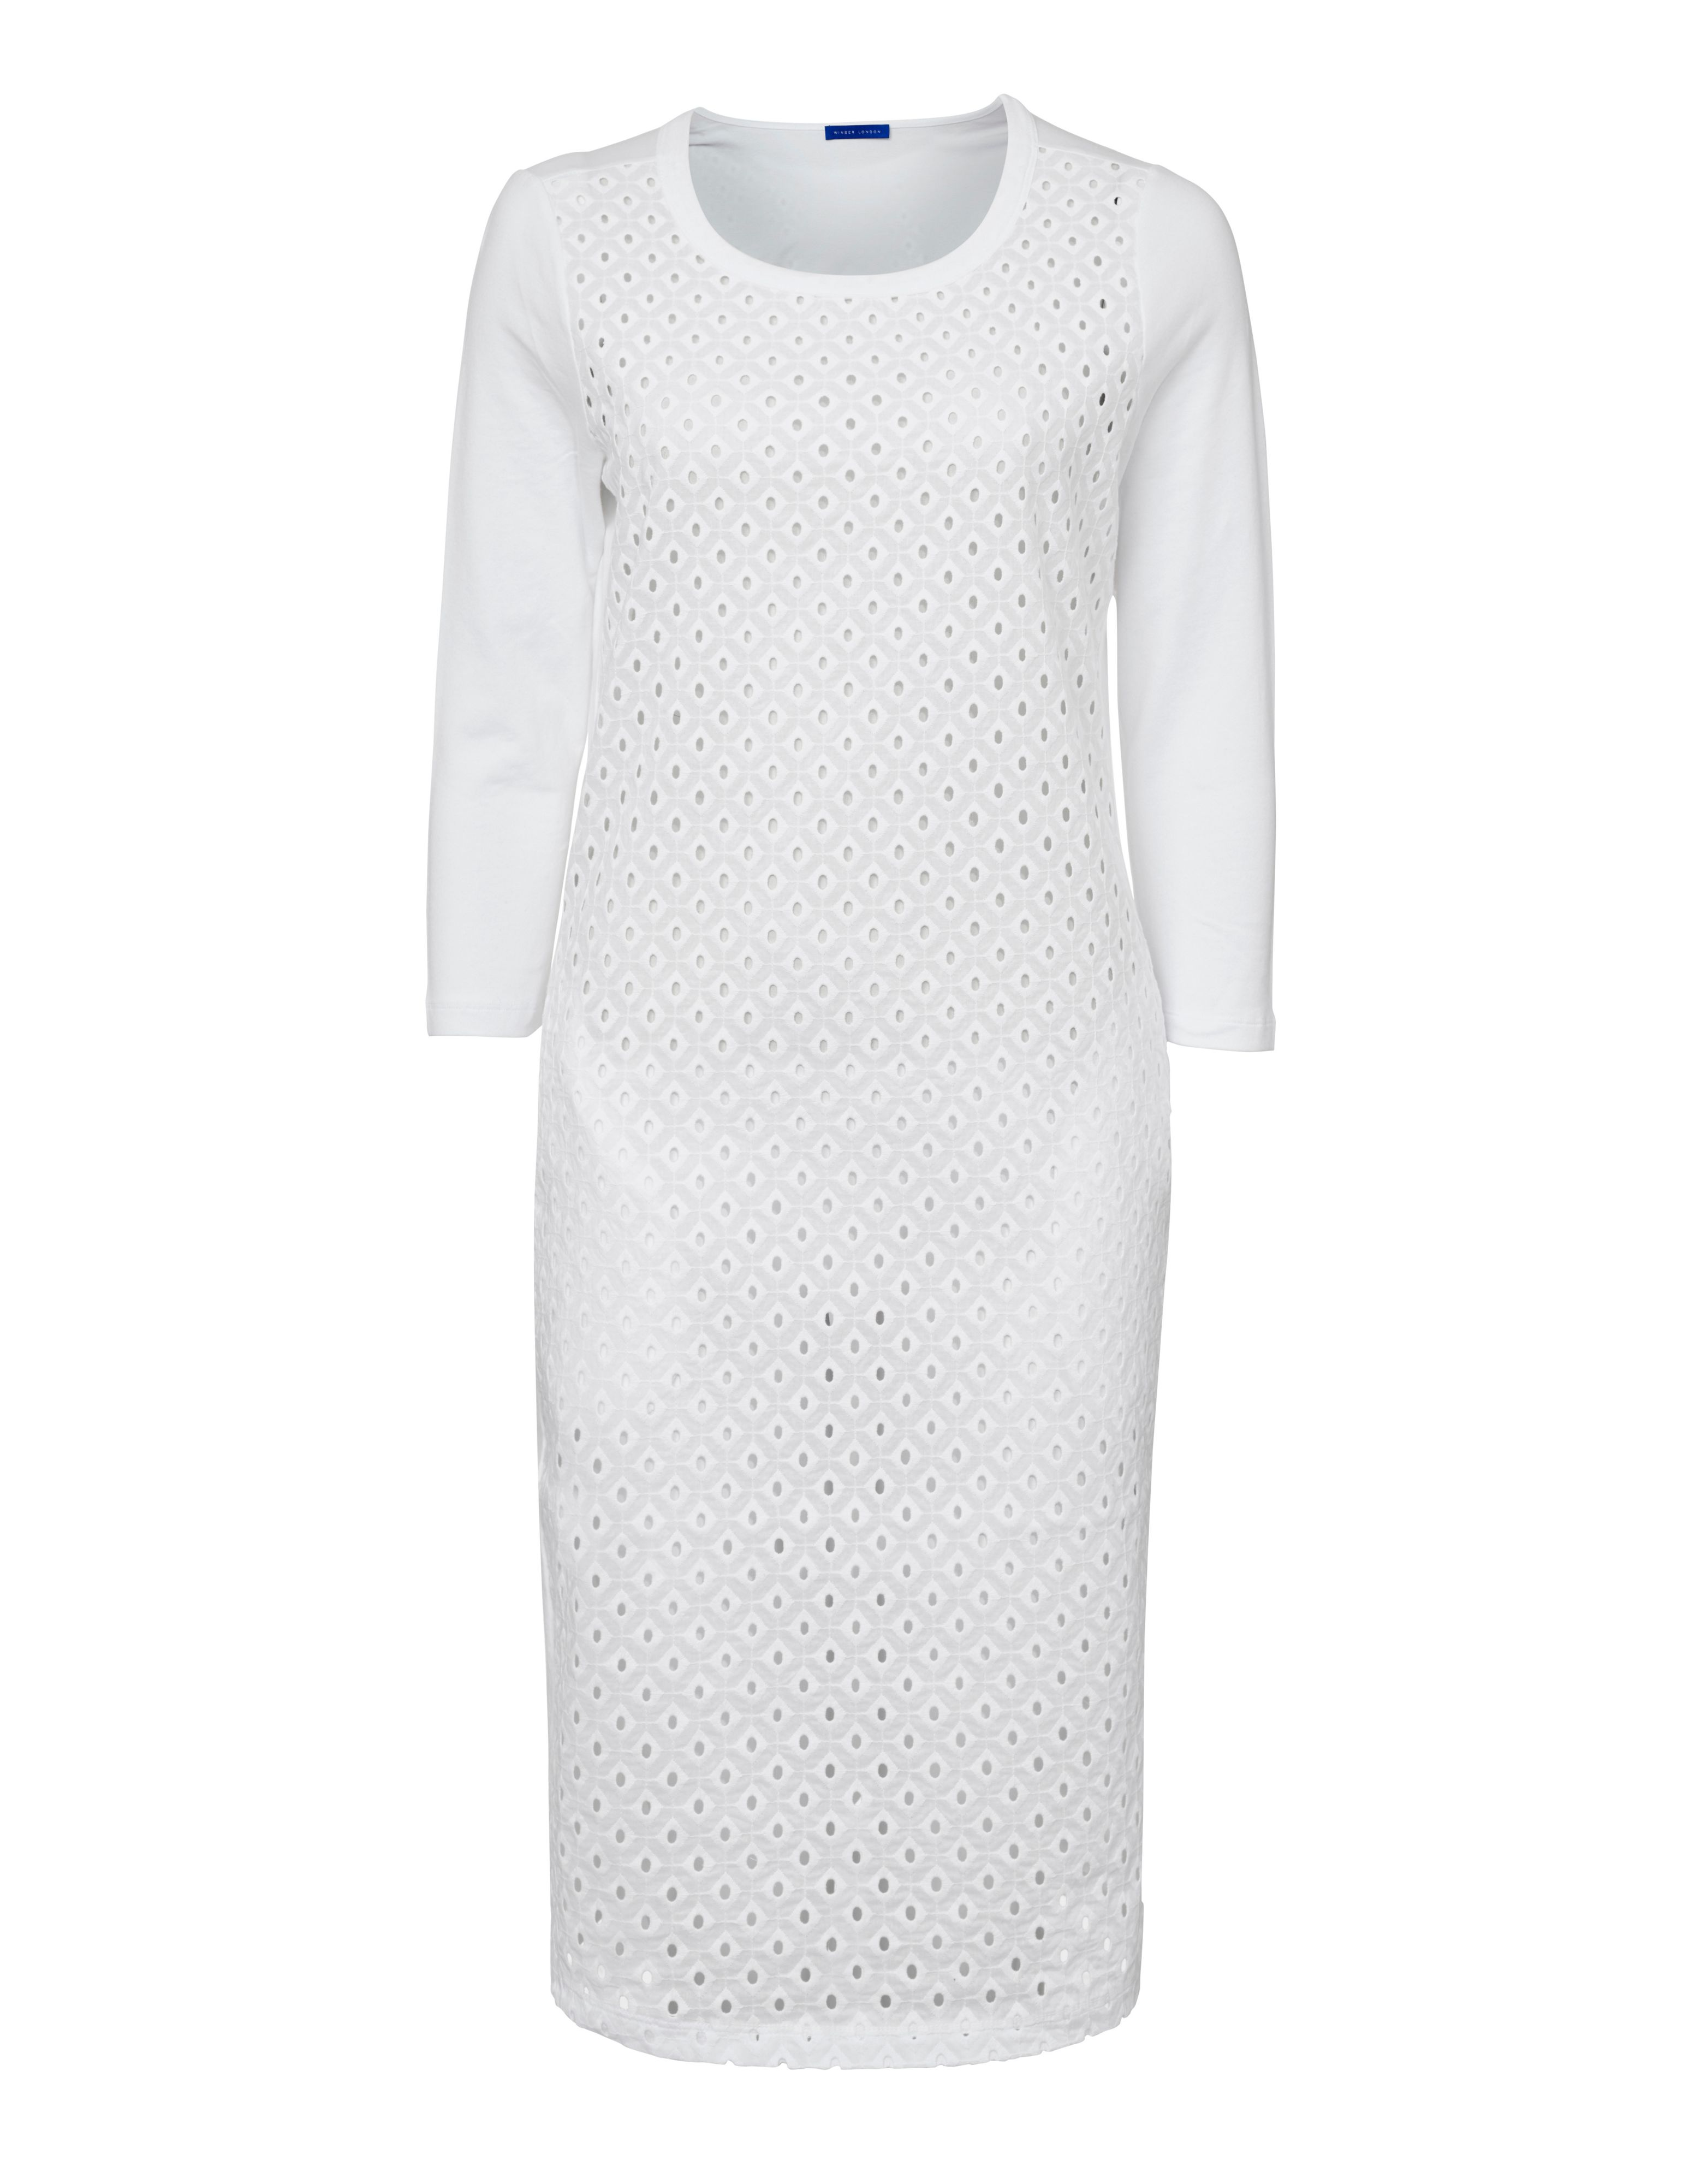 Winser London Broderie Anglaise Dress With Jersey Back, White